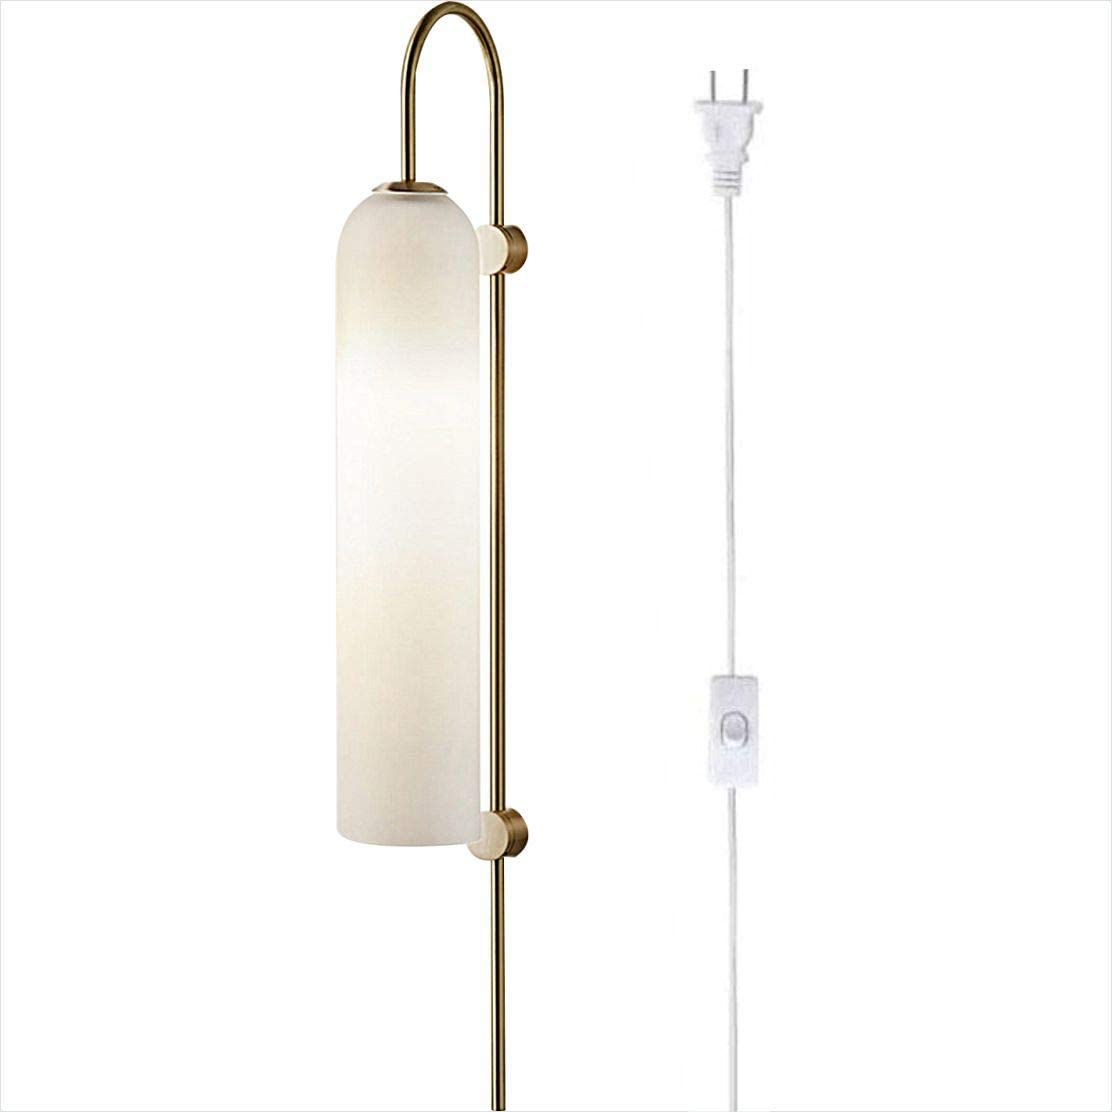 BOKT Modern Wall Sconces 1-Light Wall Mounted Light Mid Century Modern Wall Decor Stylish Lighting Lamp Long Tube Glass Vanity Light Fixture (Milk White, Plug in)